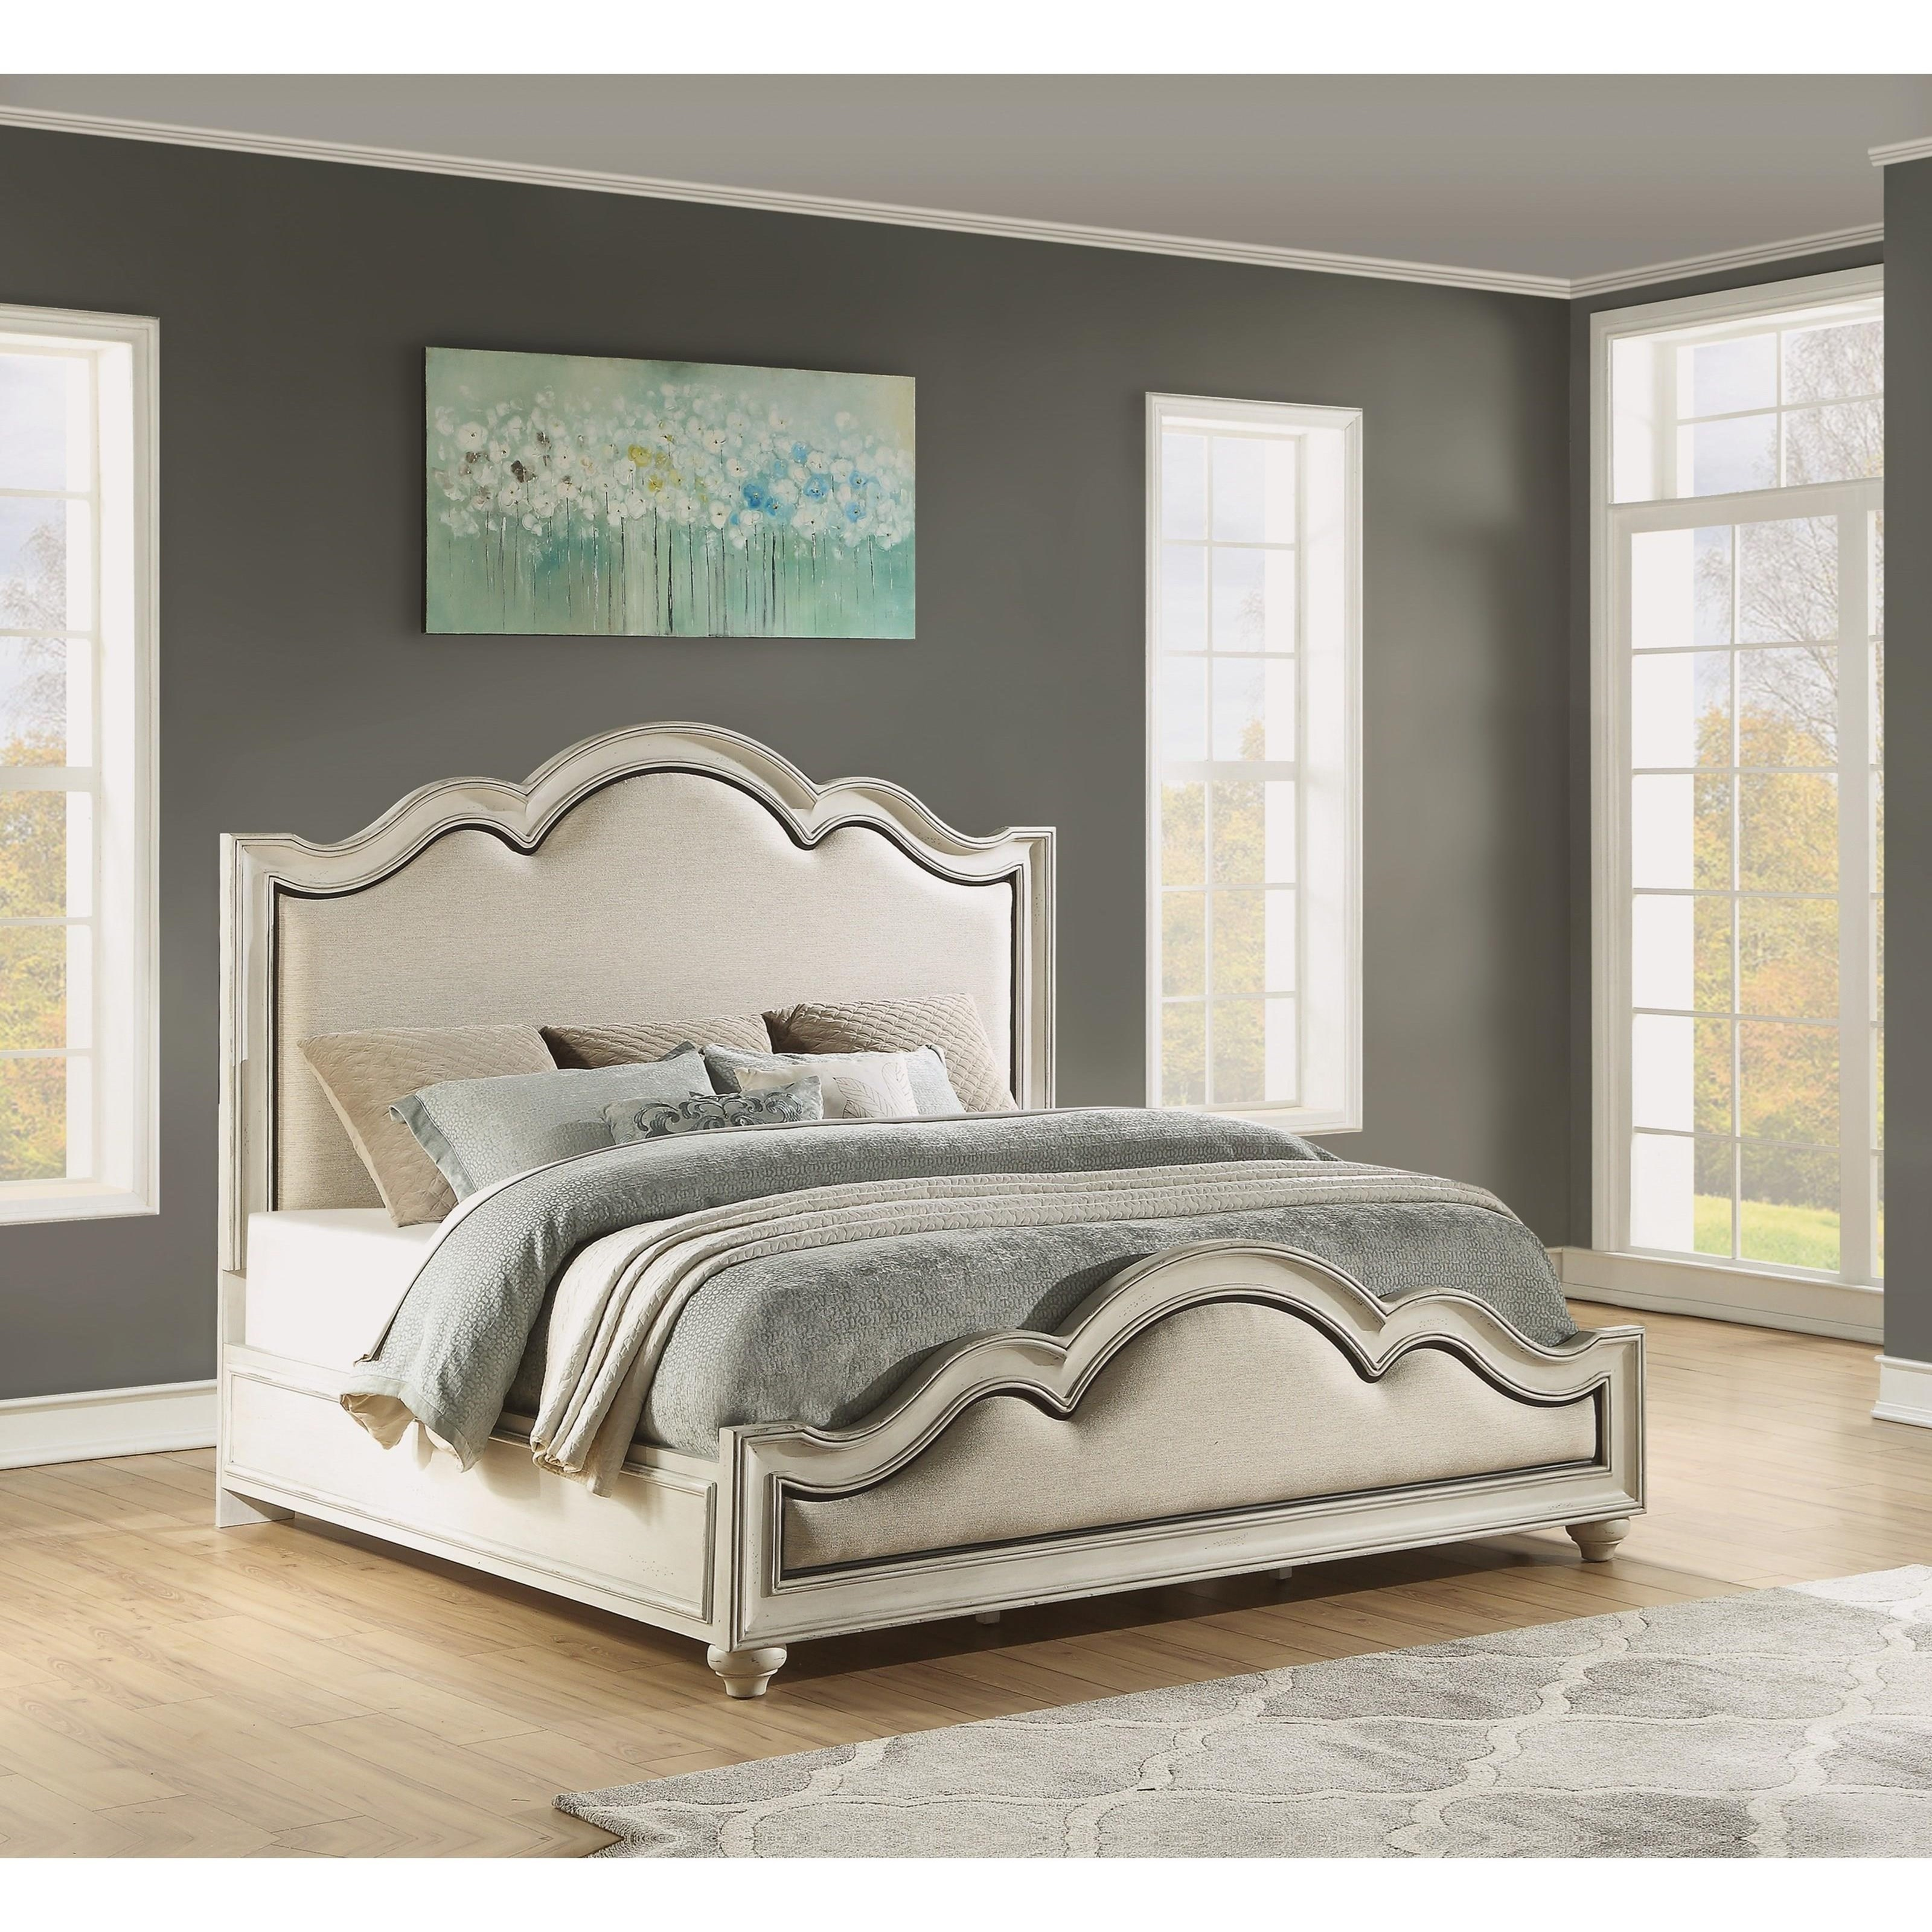 Harmony Queen Upholstered Bed by Flexsteel Wynwood Collection at Northeast Factory Direct